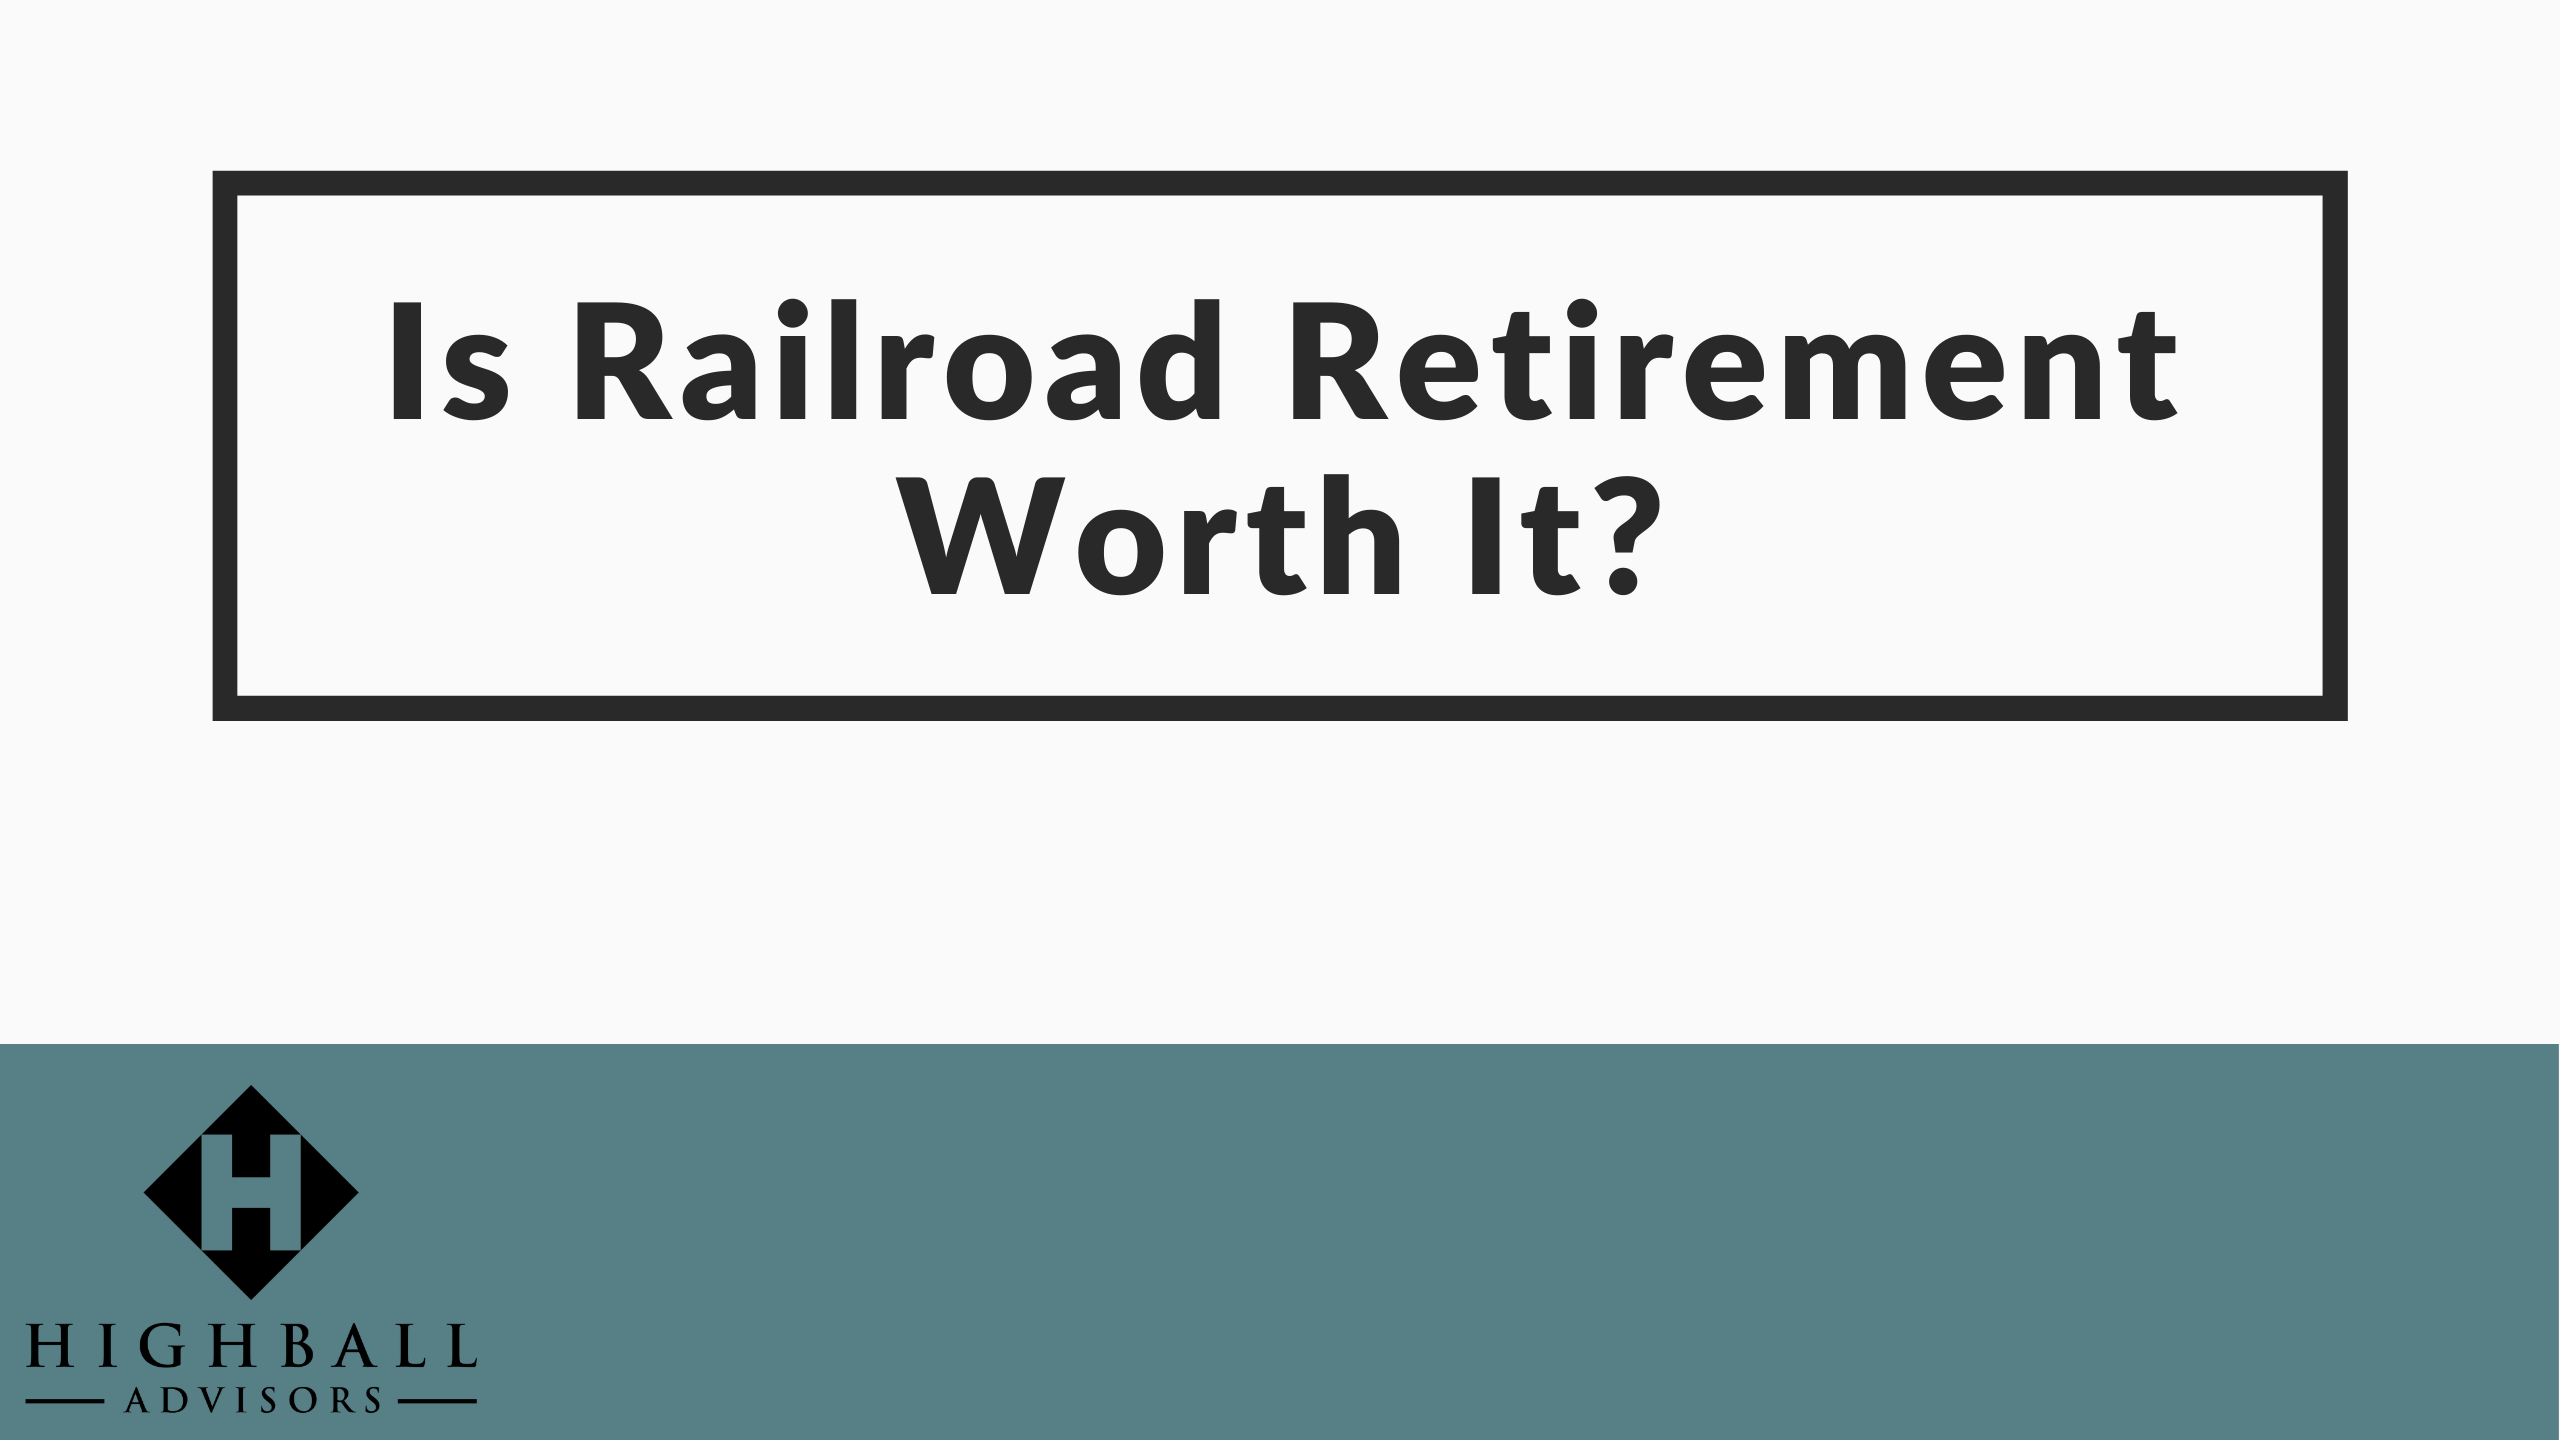 VIDEO: Is Railroad Retirement Worth It? Thumbnail